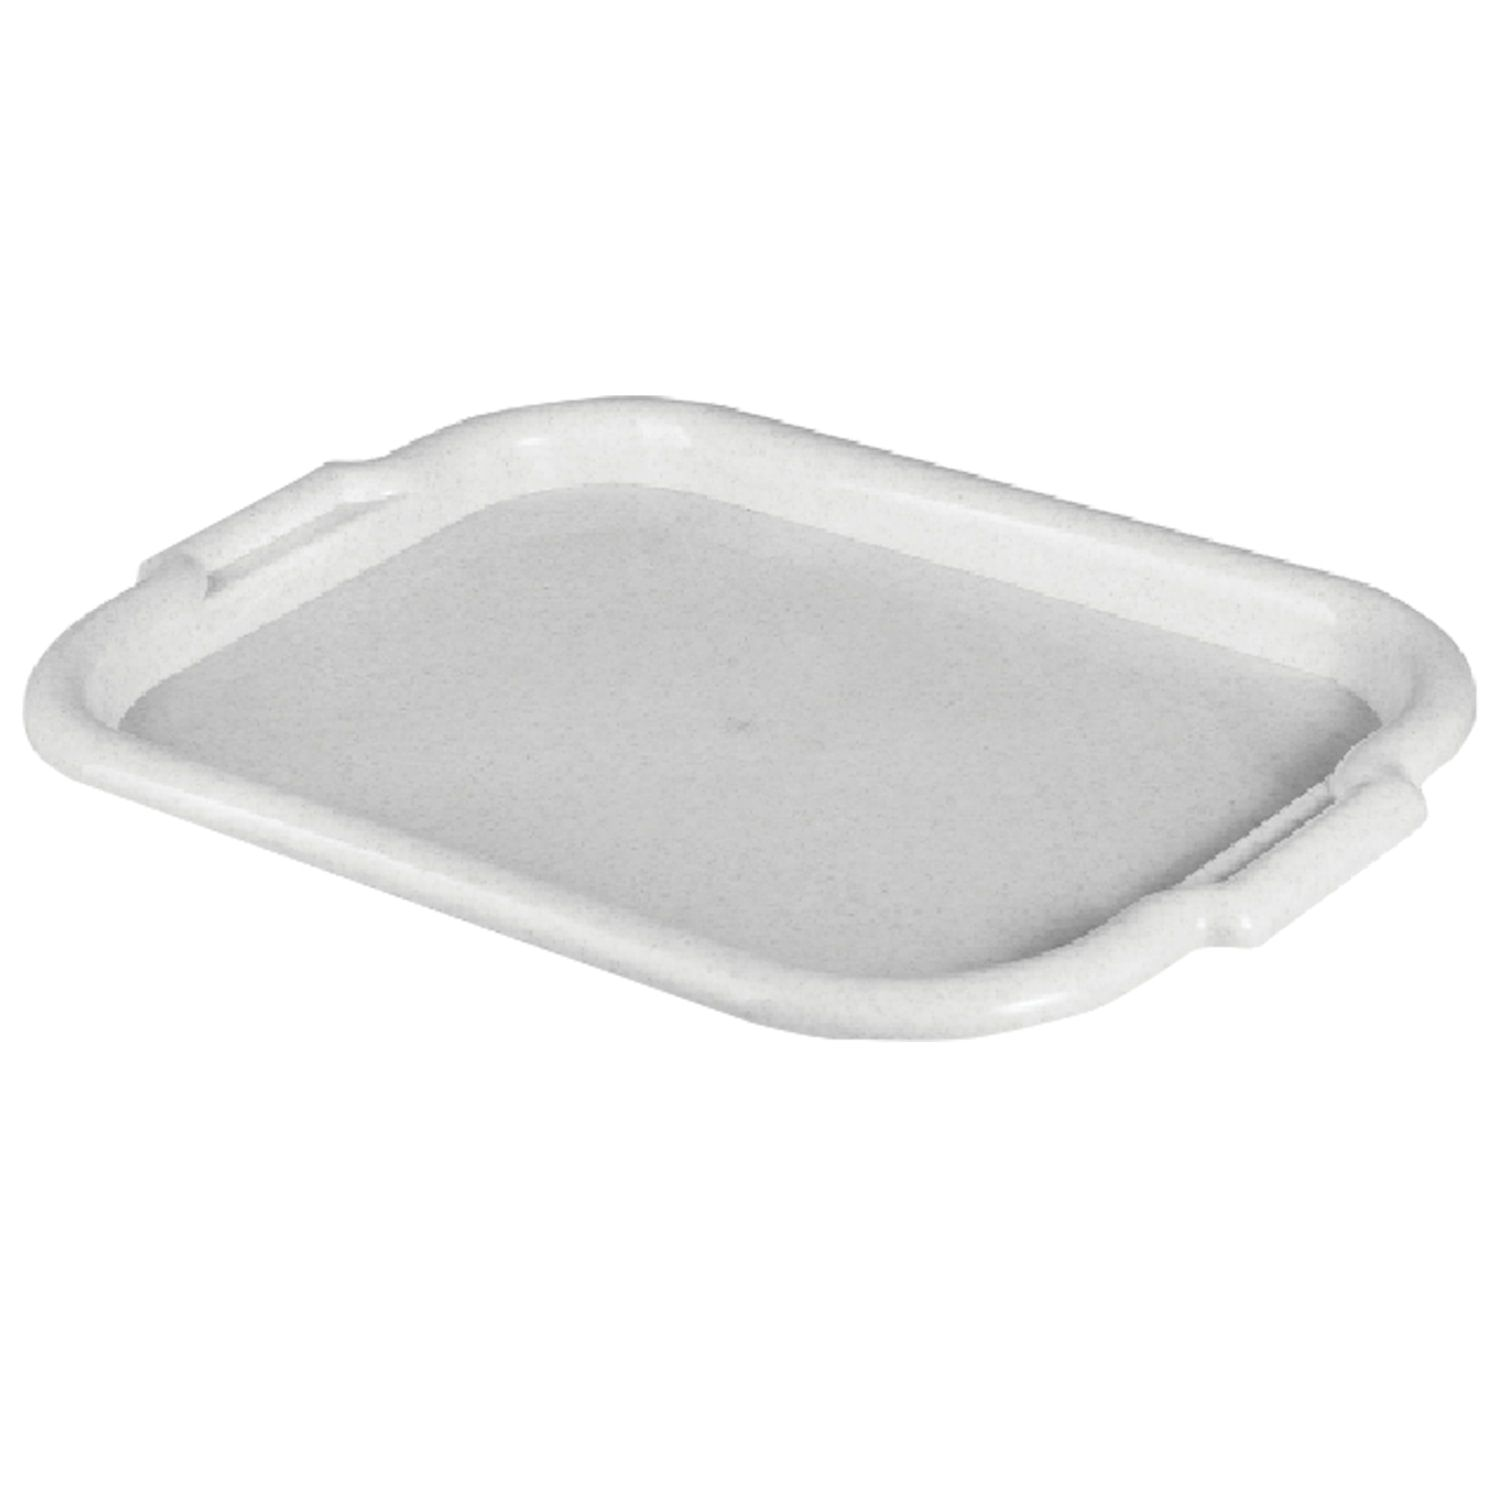 IDEA / Universal tray, medium, 27x39 cm, marble / white rattan